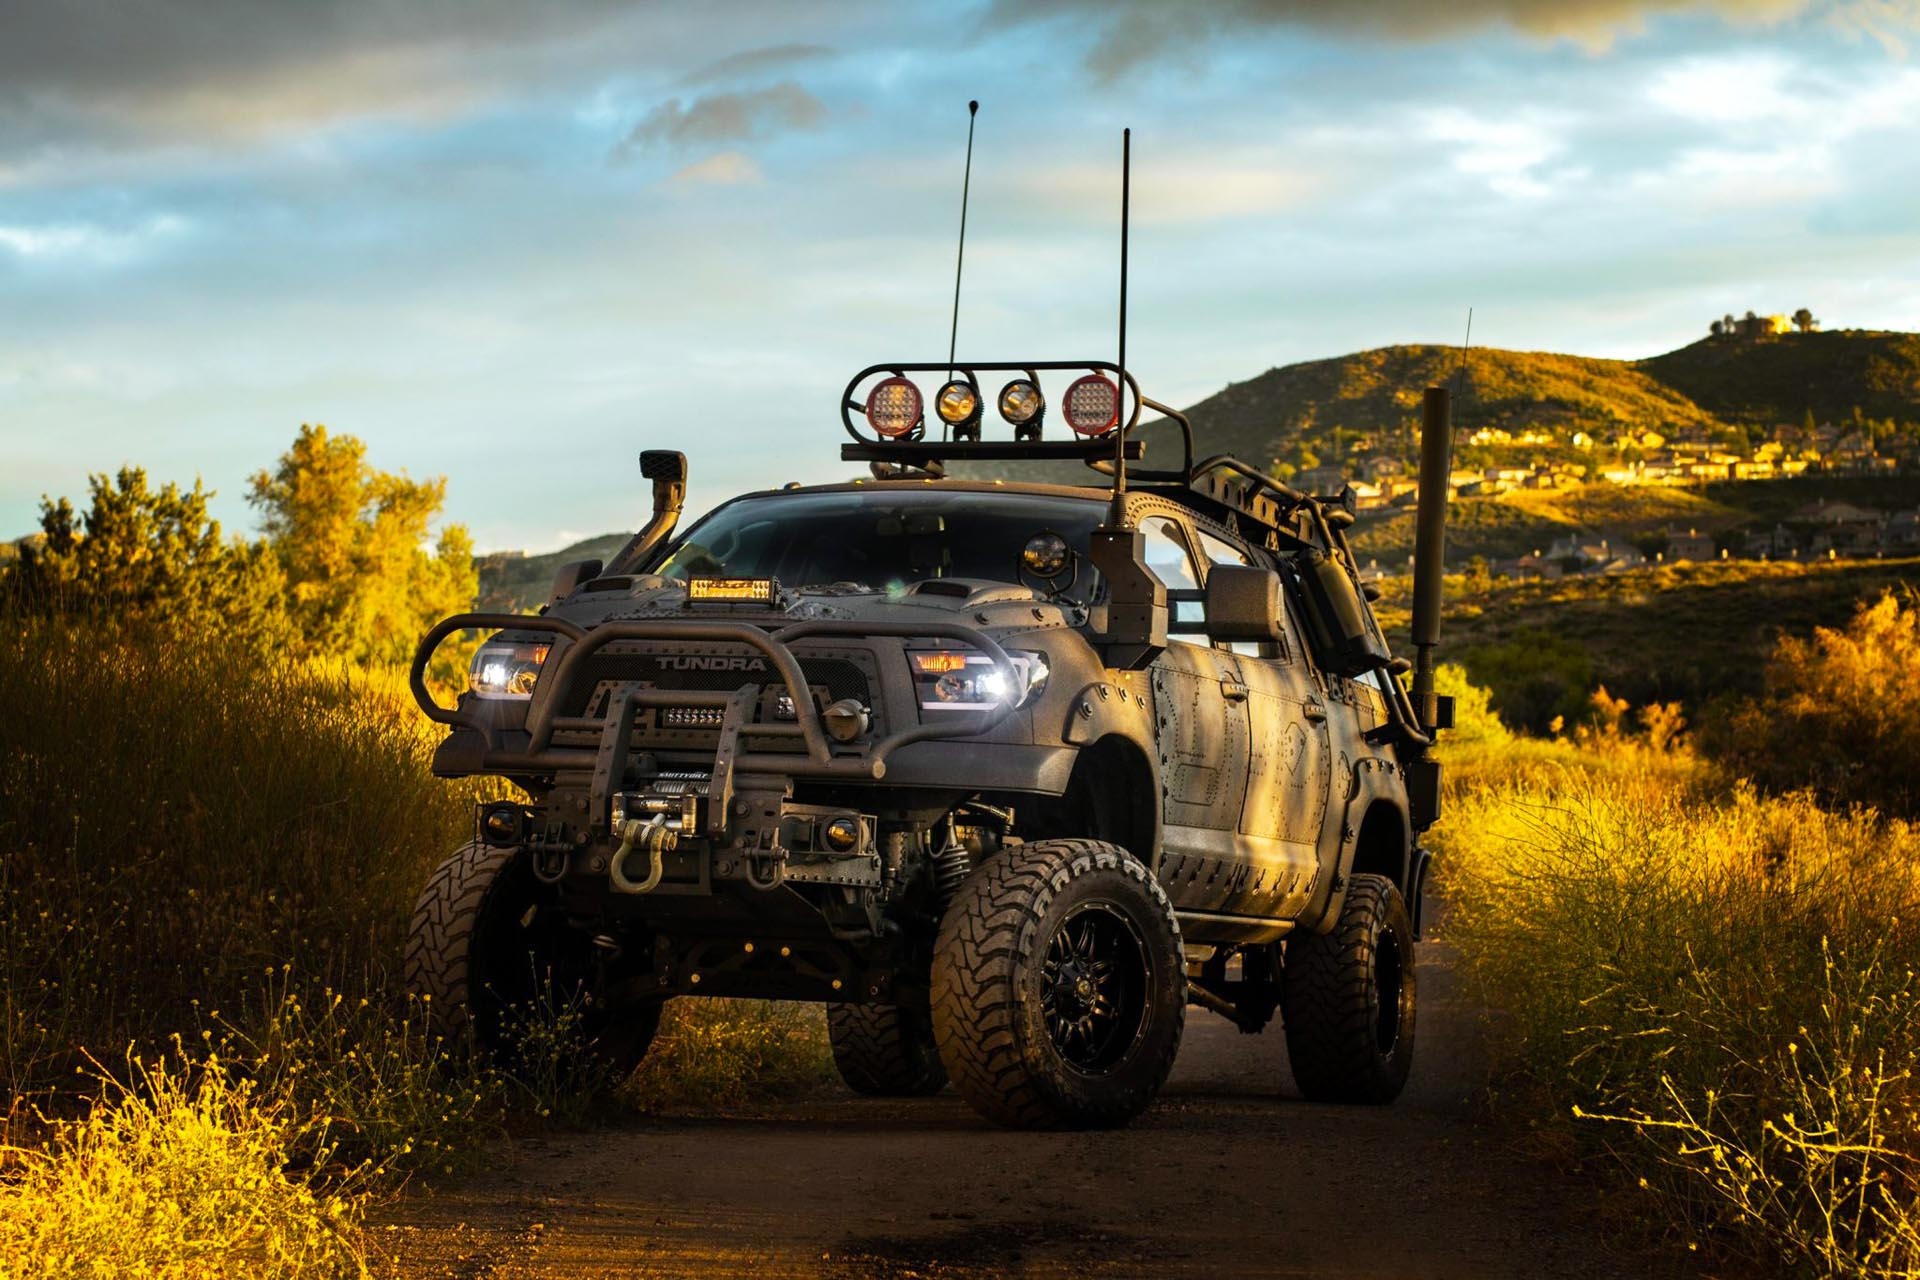 2013_toyota_custom_military_expedition_style_tundra_1592229827109deimg_7038-scaled